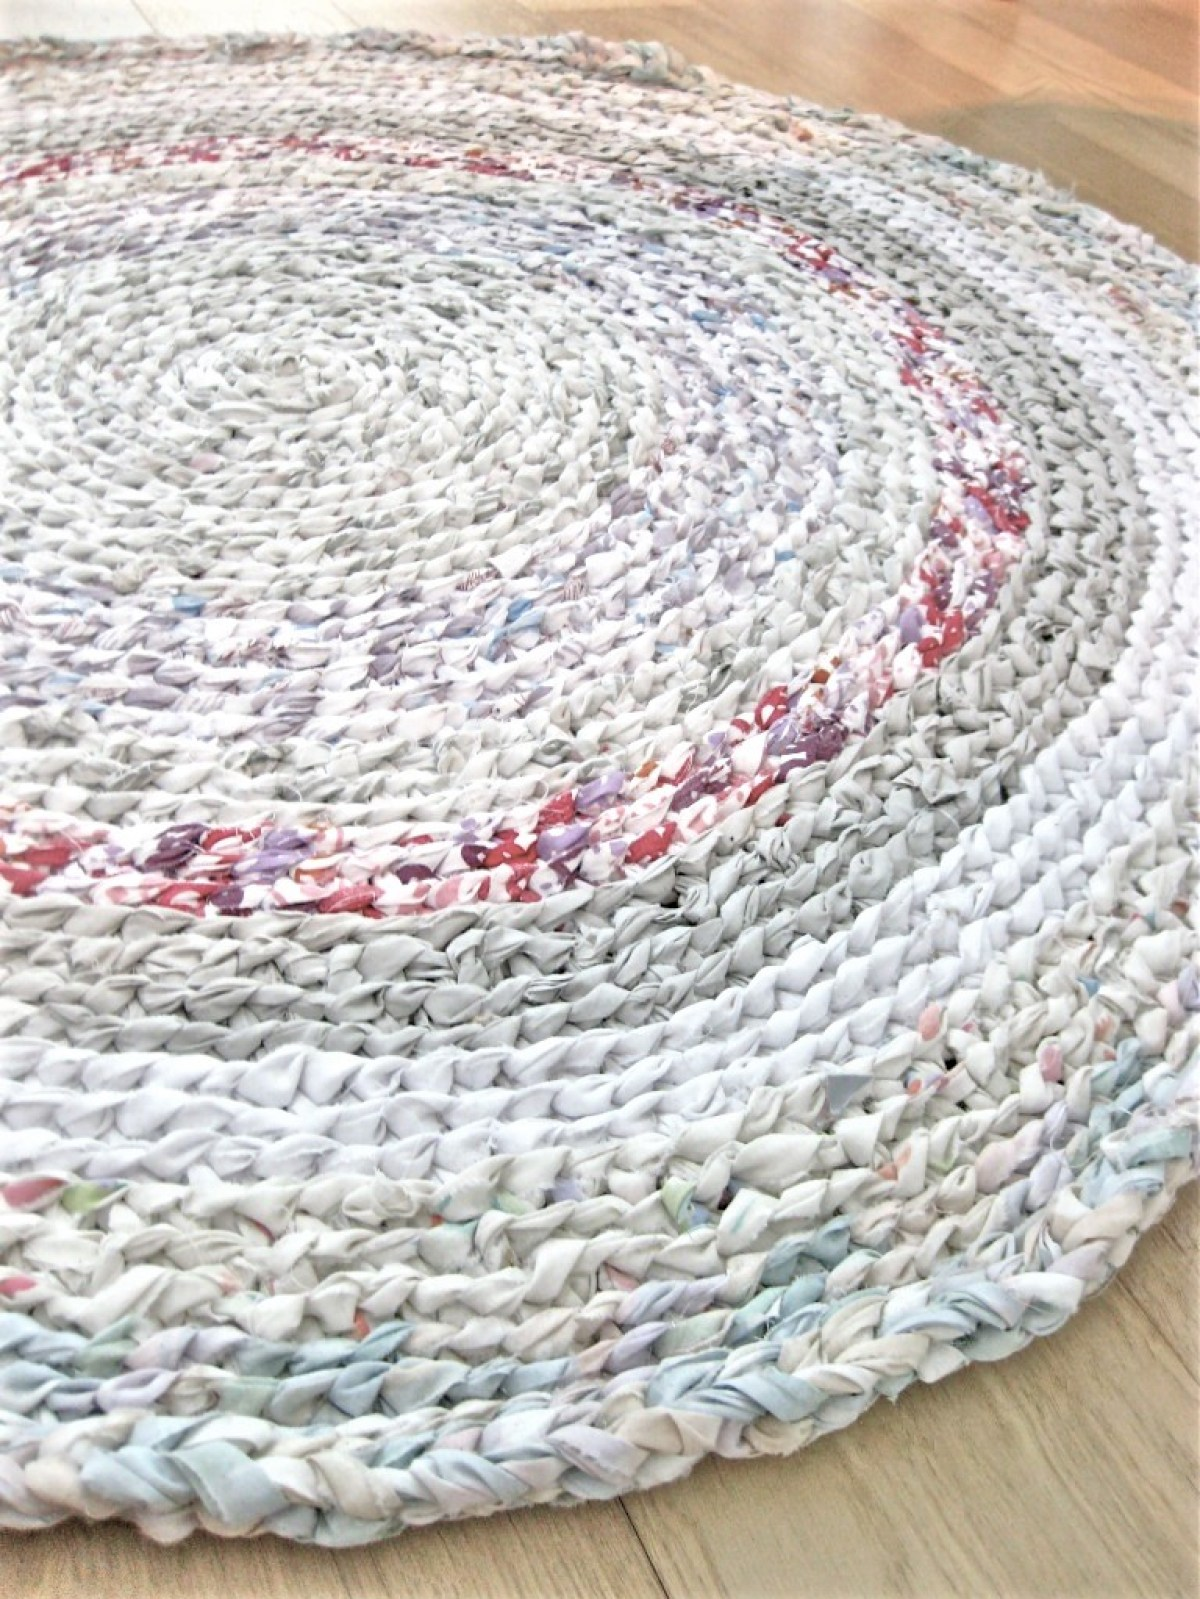 My First Rag Rug Made From Old Flat Sheets Making